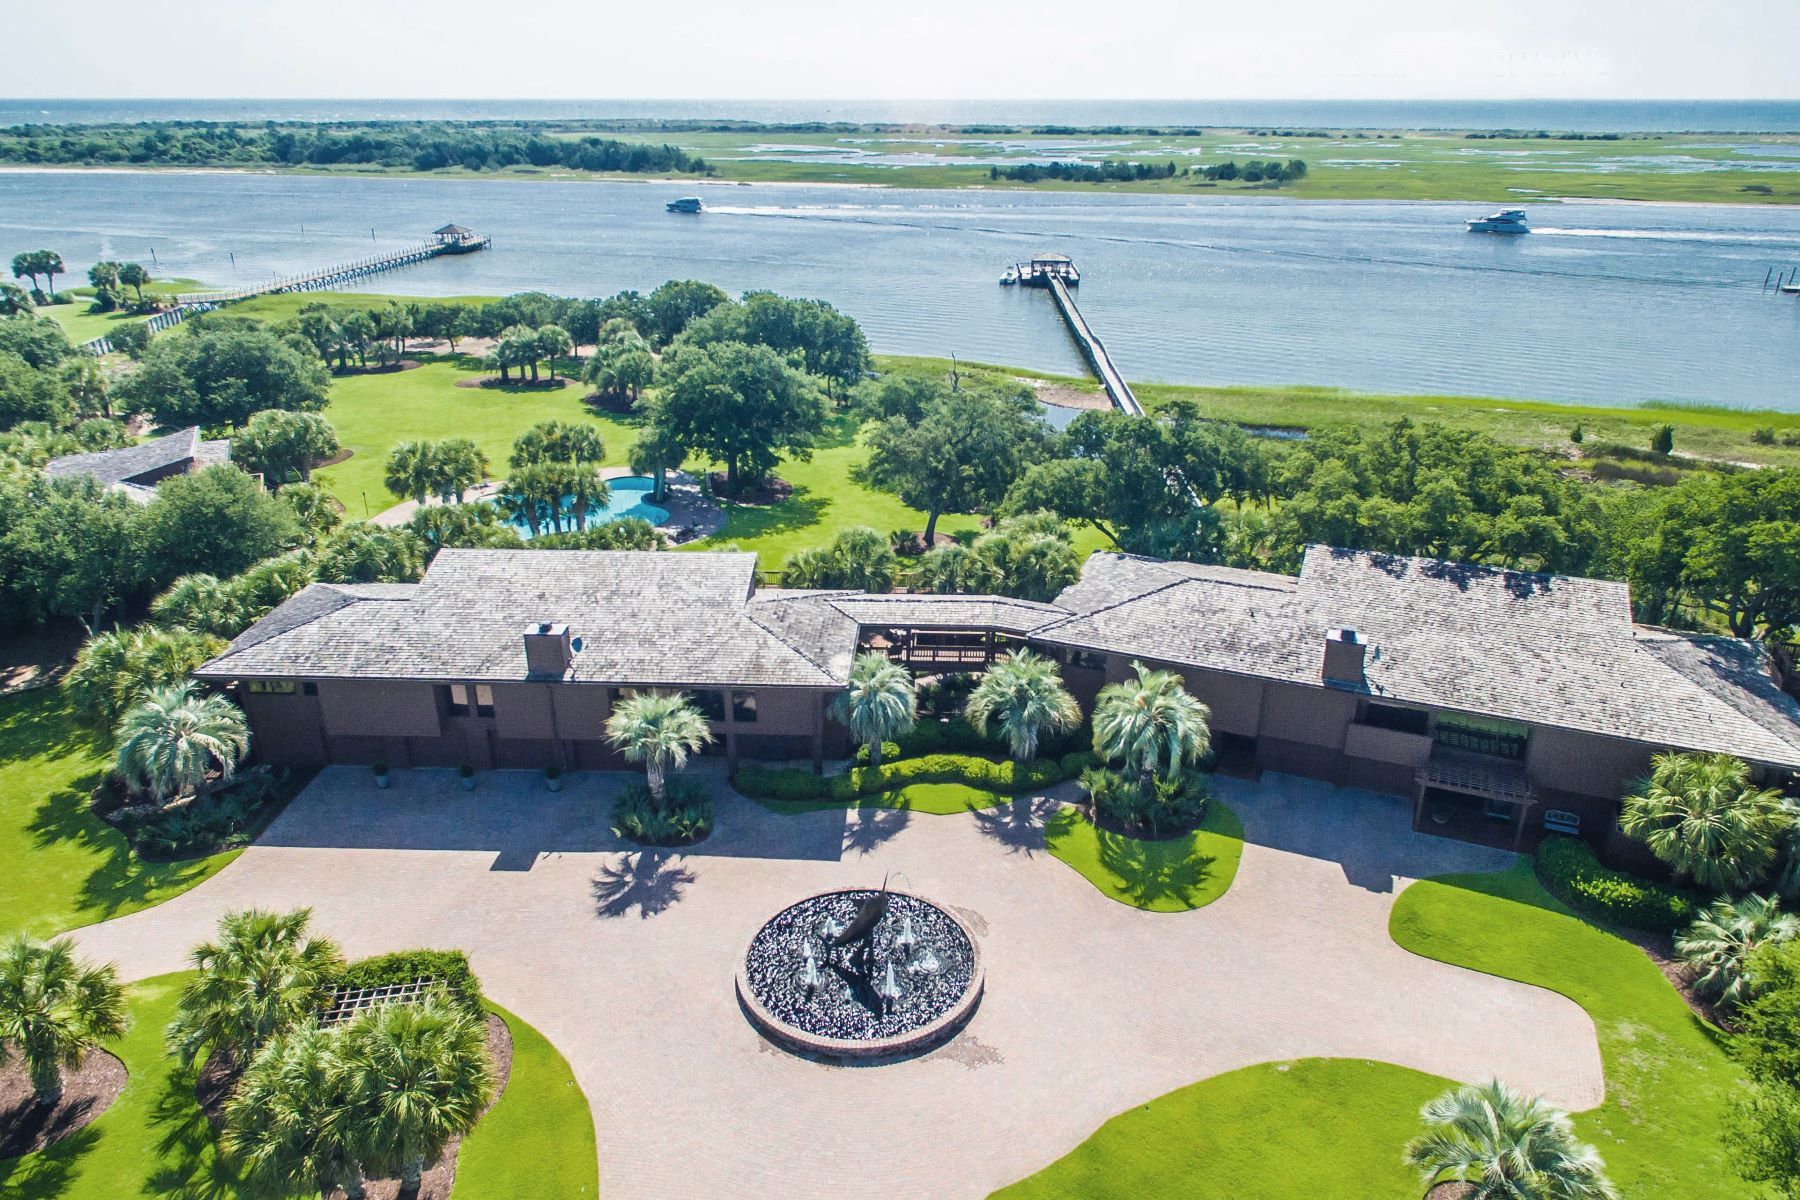 Single Family Home for Sale at The Sea Lilly - An Extraordinarily Private Estate 7422 Sea Lilly Lane, Wilmington, North Carolina 28409 United States